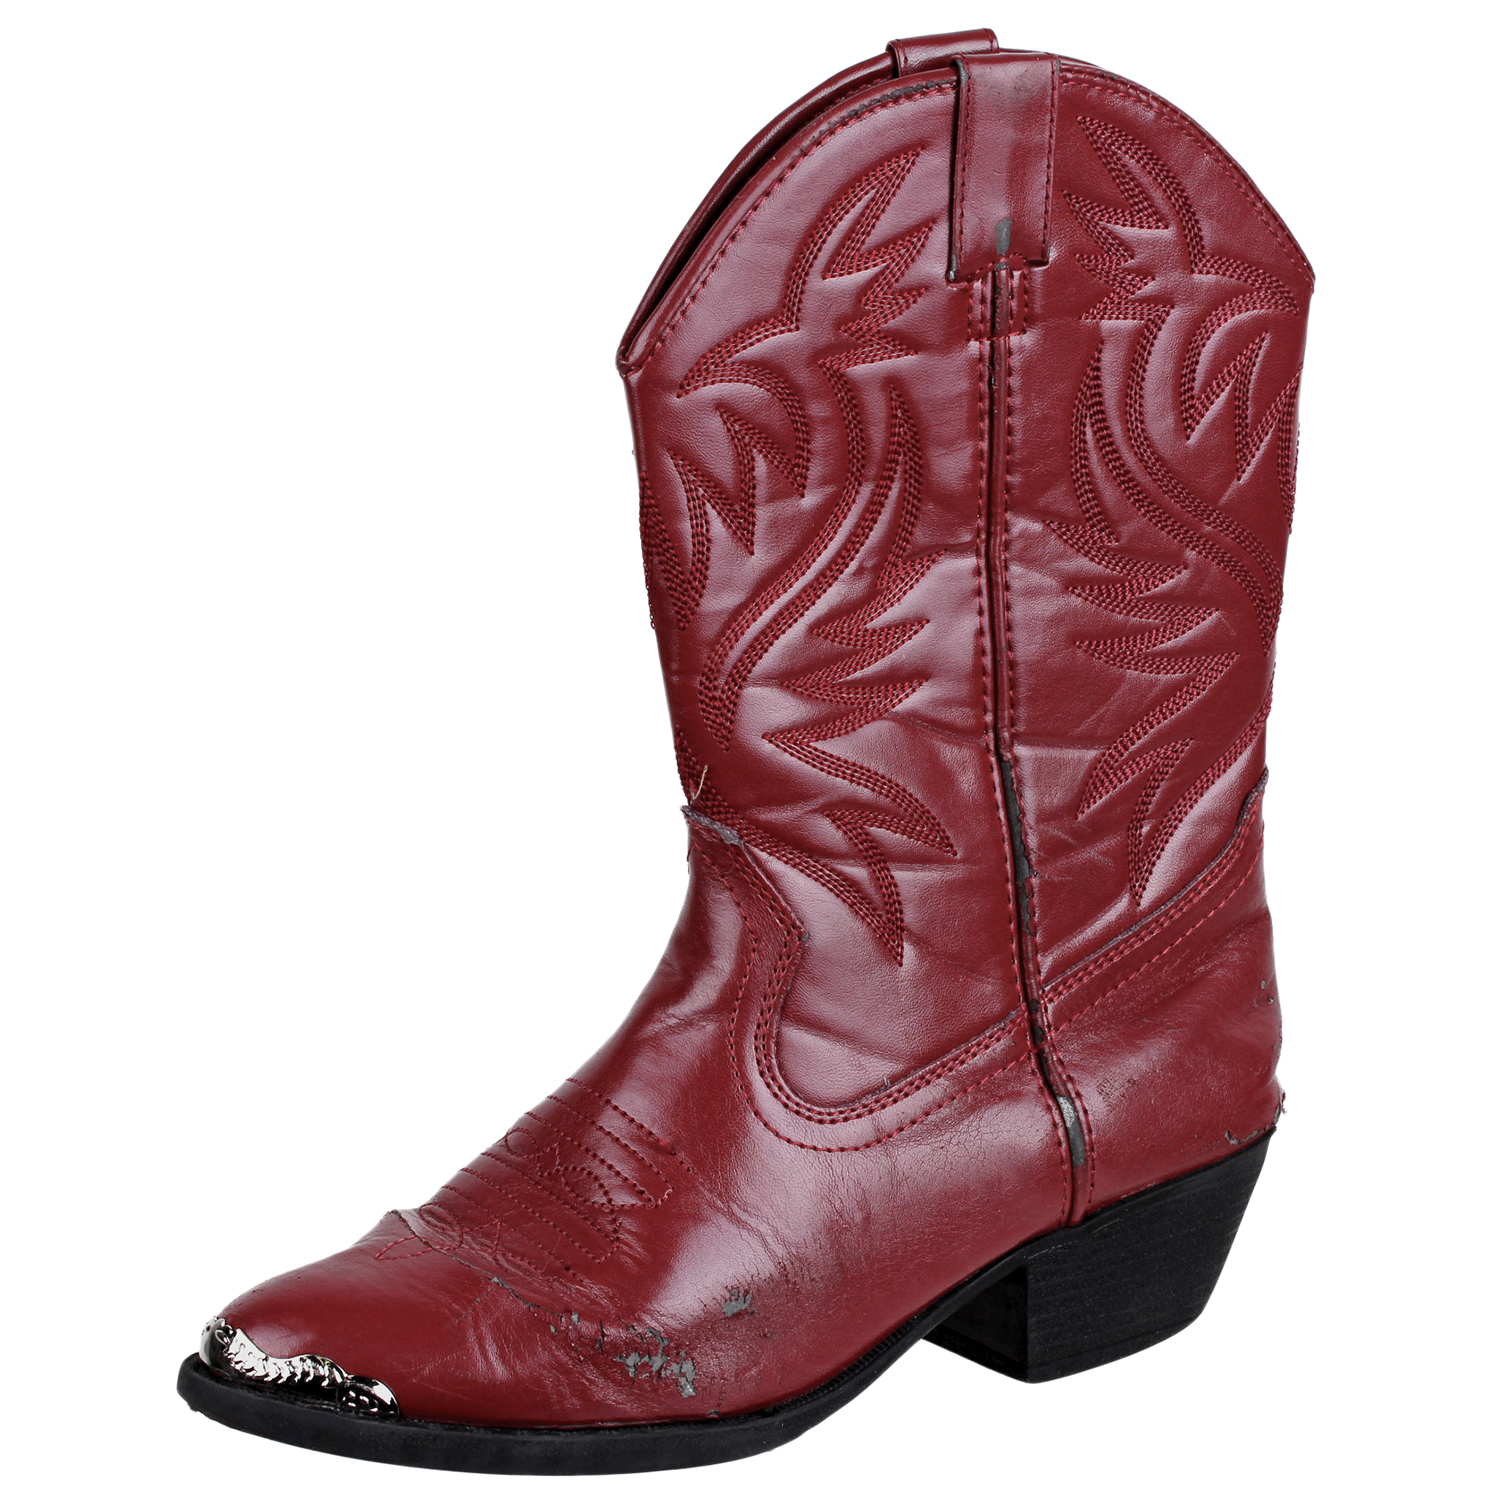 3589f73cfdf Details about Smoky Mountain Kids Mesquite Western Boot Shoe Red 6